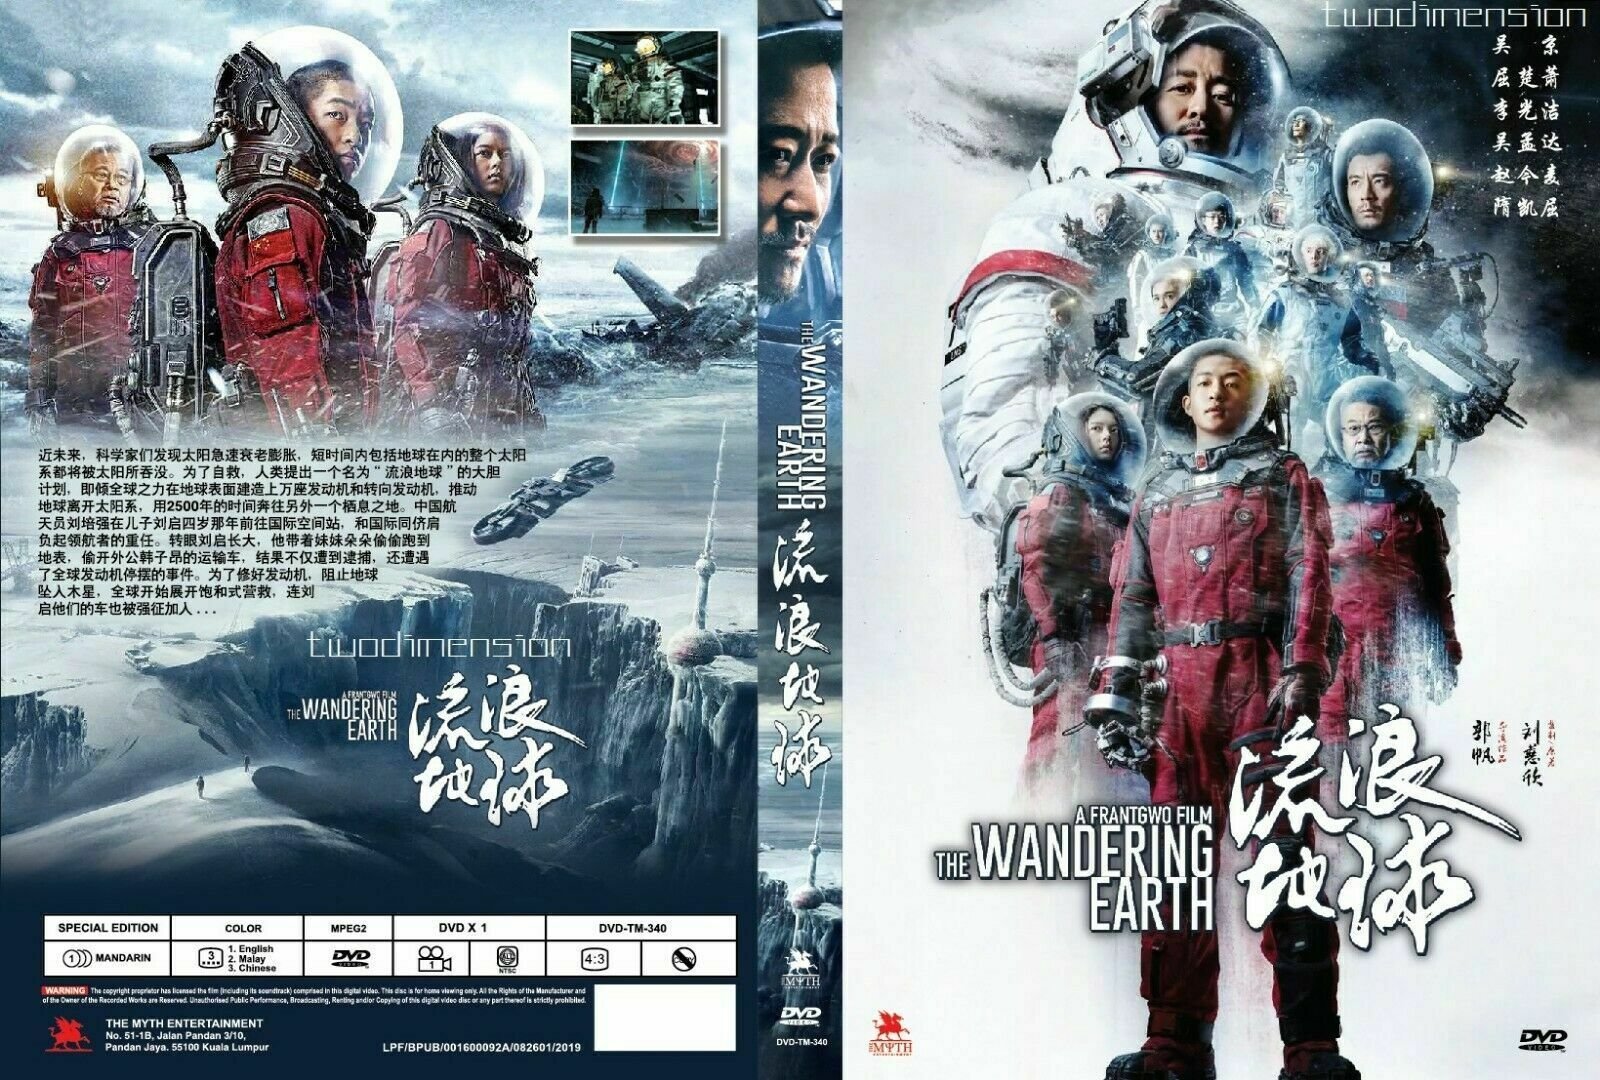 The Wandering Earth Chinese Dvd All Region Ntsc English Subtitles For Sale Online Ebay